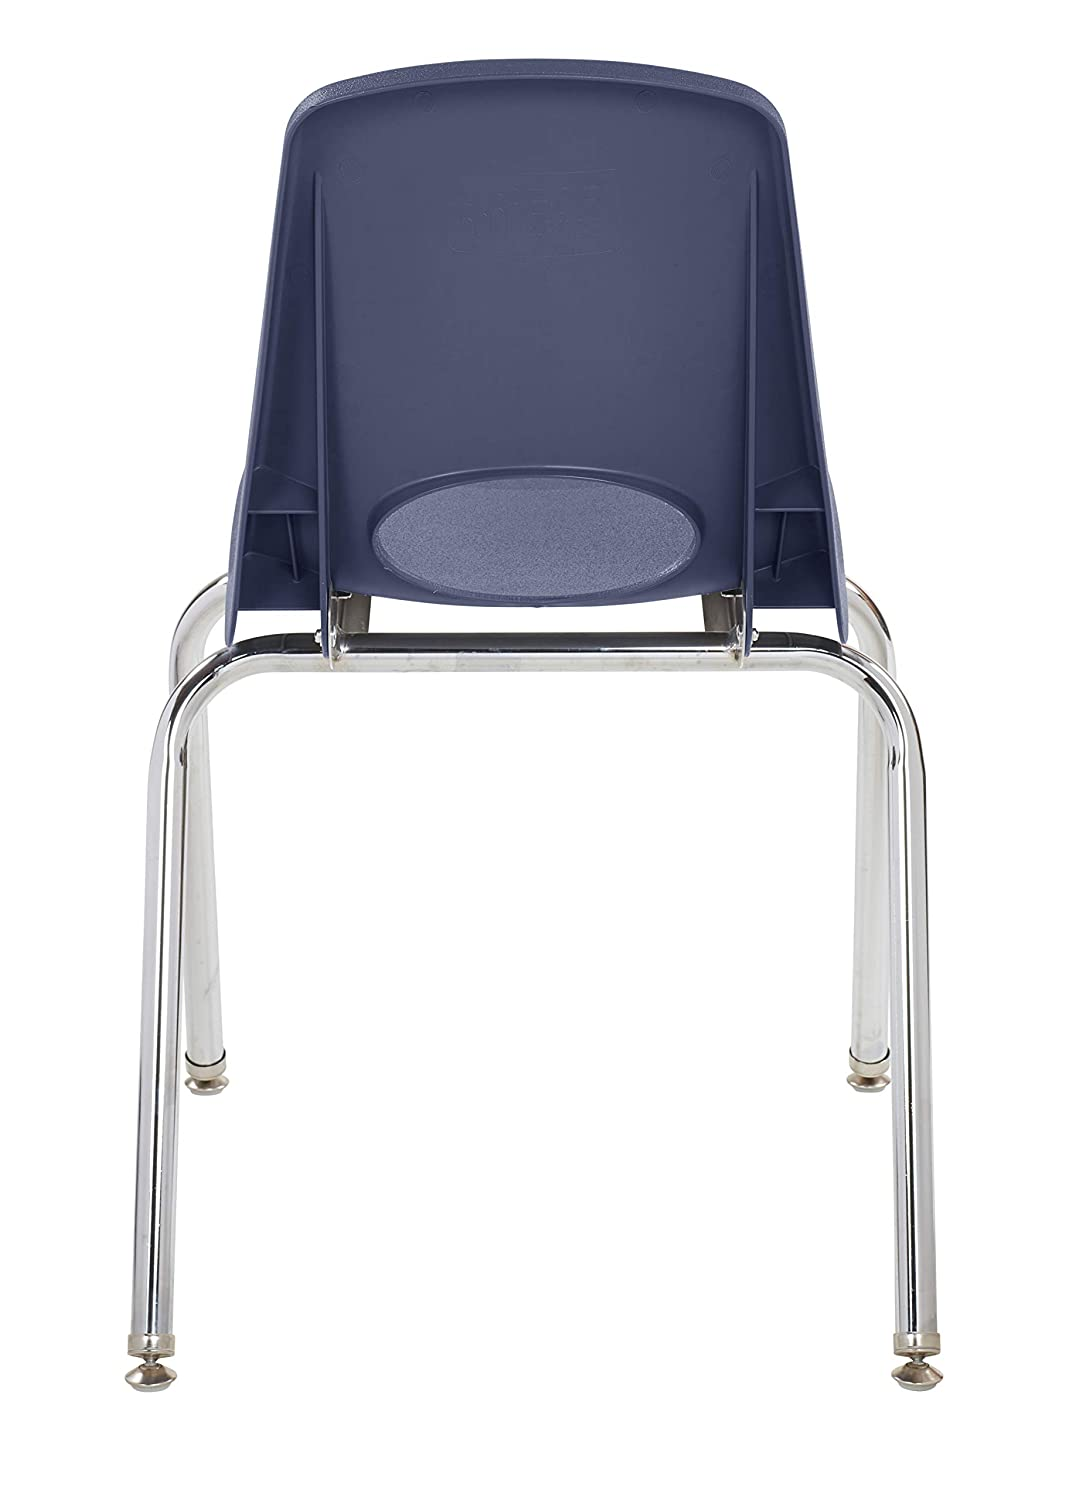 Sand 5-Pack 18 School Stack Chair,/Stacking Student Chairs with Chromed Steel Legs and Nylon Swivel Glides